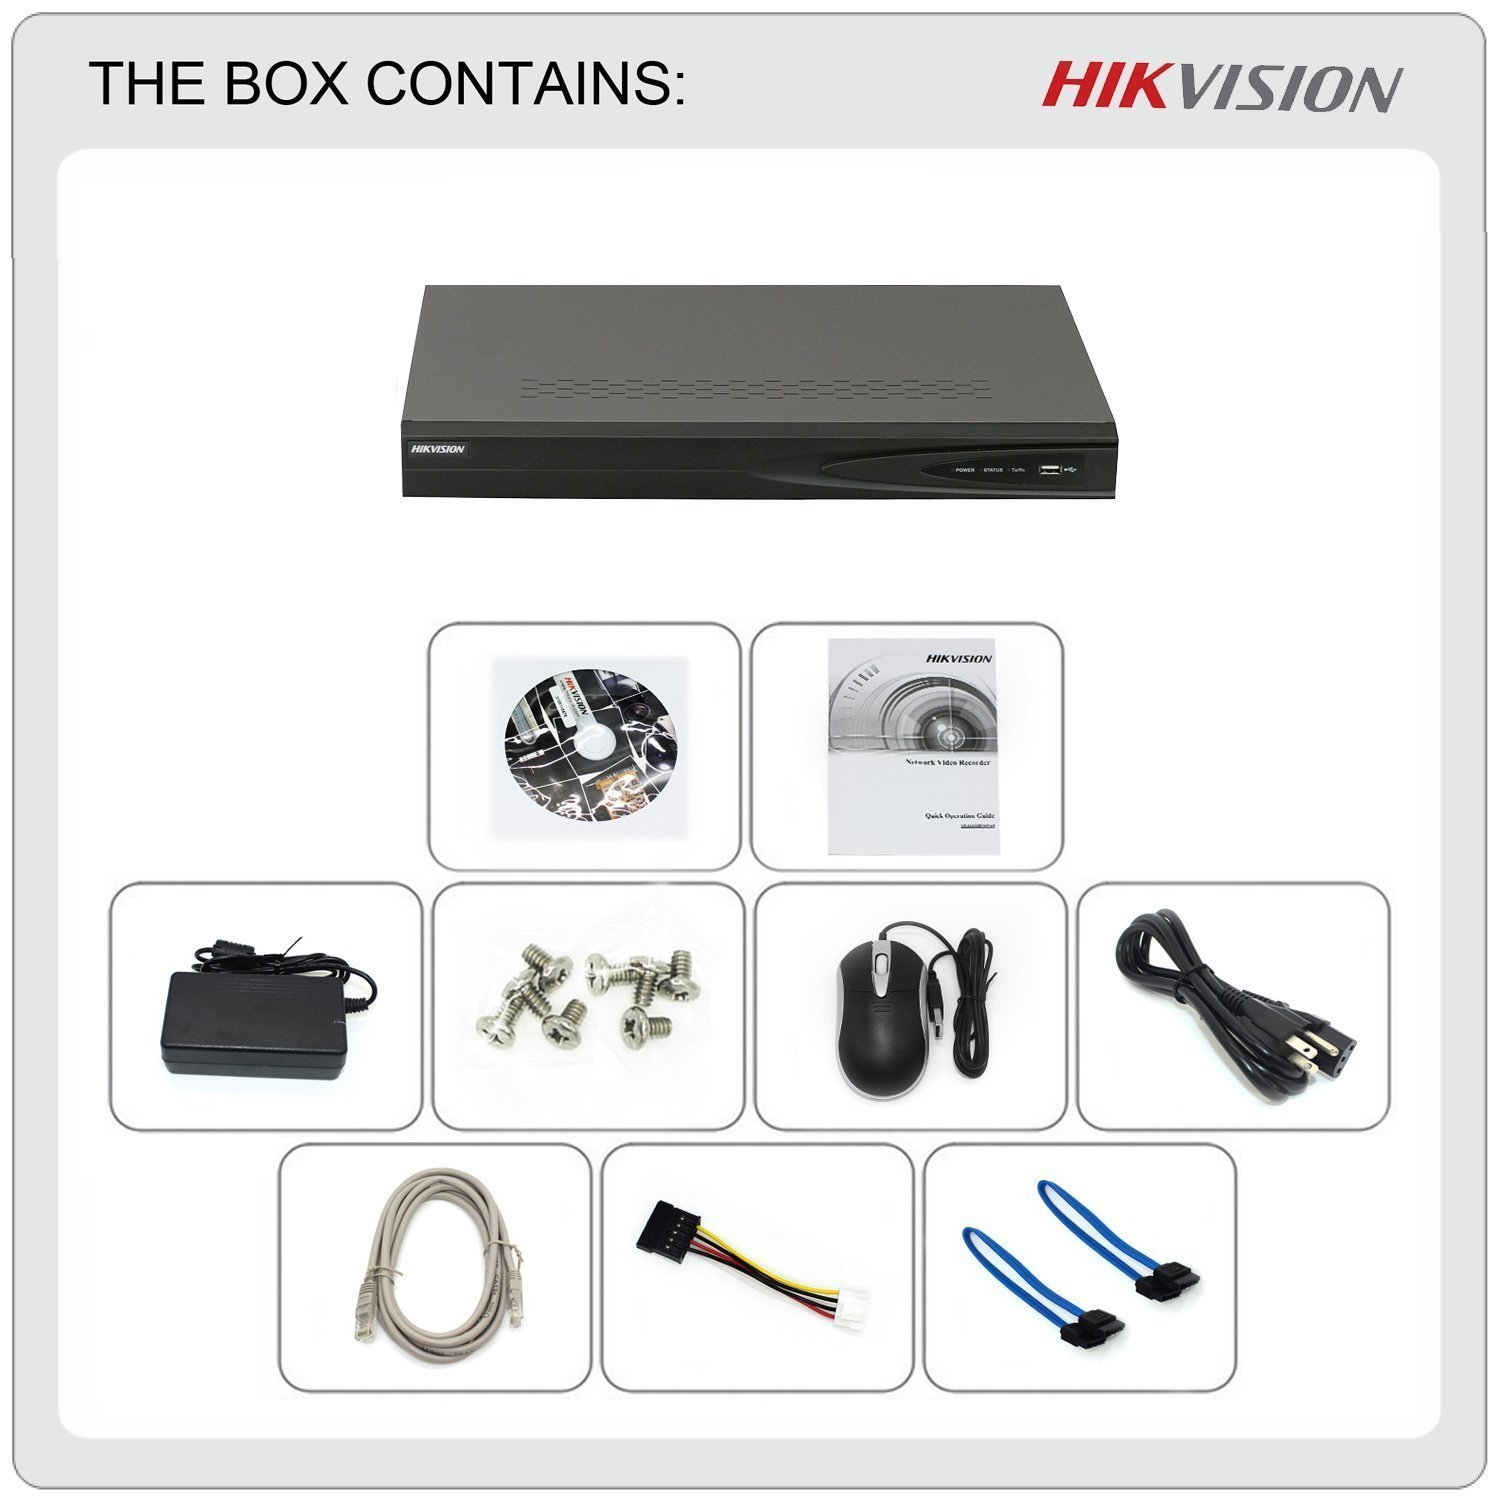 HIKVISION 16CH 8 Ports PoE DS-7616NI-E2/8P NVR Network Video Recorder with  up to 5MP Resolution Recording